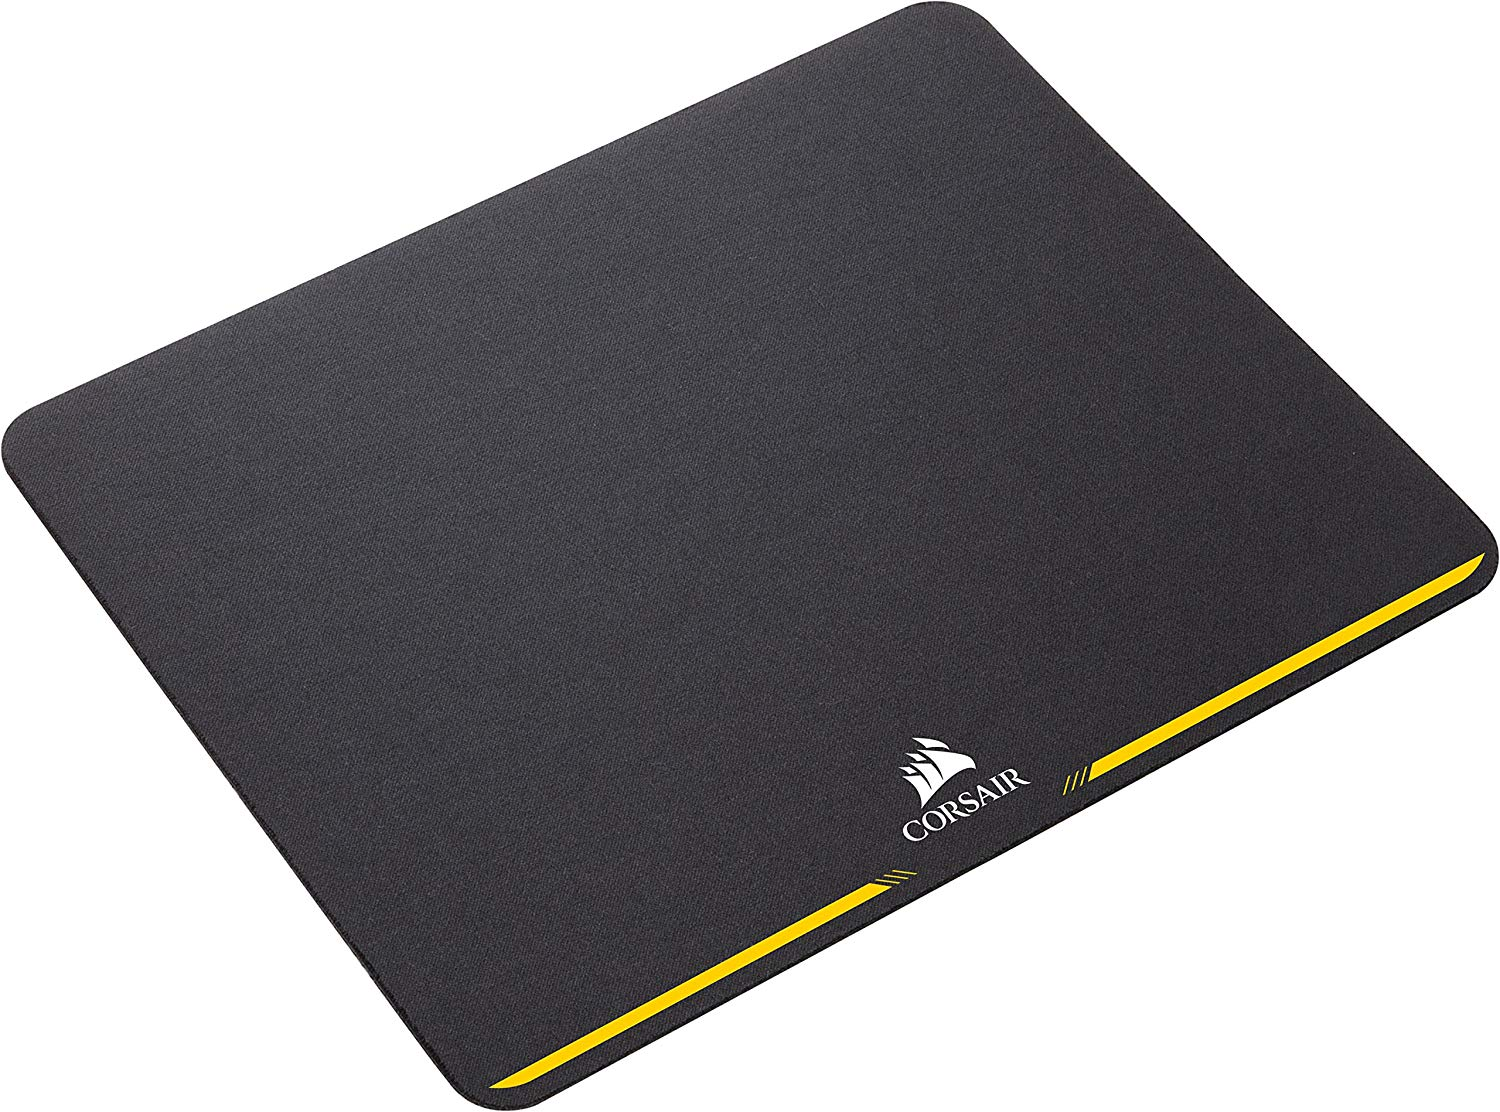 corsair Коврик для мыши Corsair Gaming MM200 Cloth (CH-9000098-WW) Small (Black)